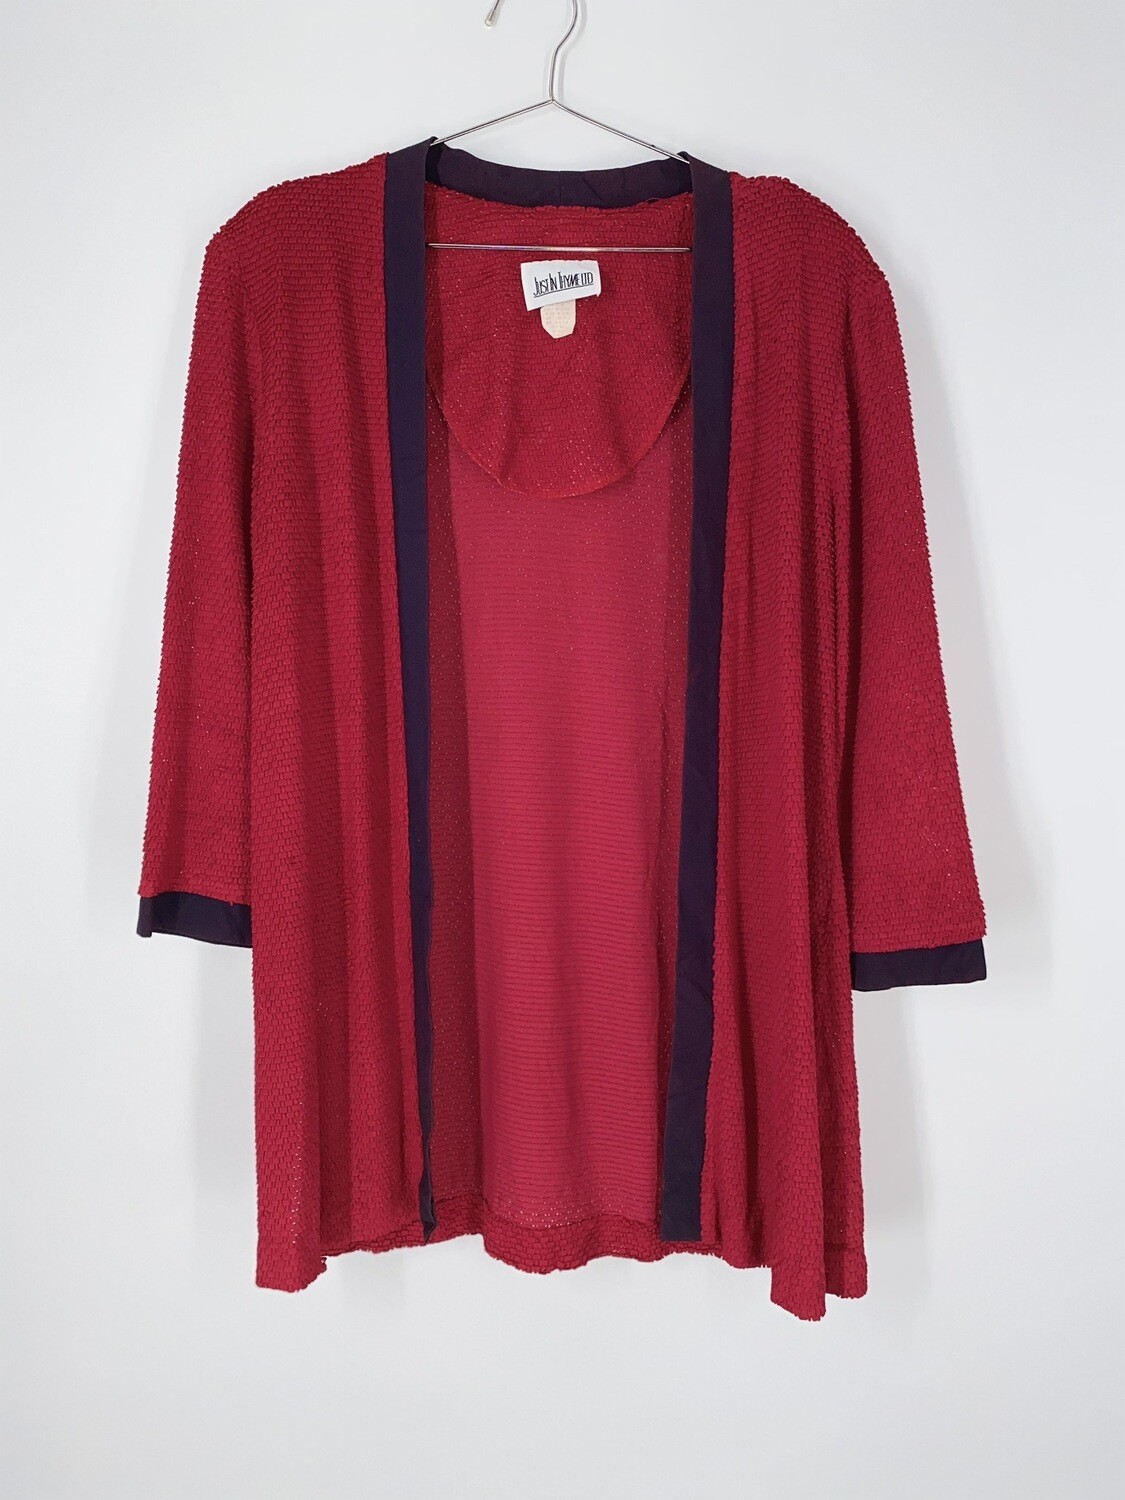 Red Textured Open Front Top Size L